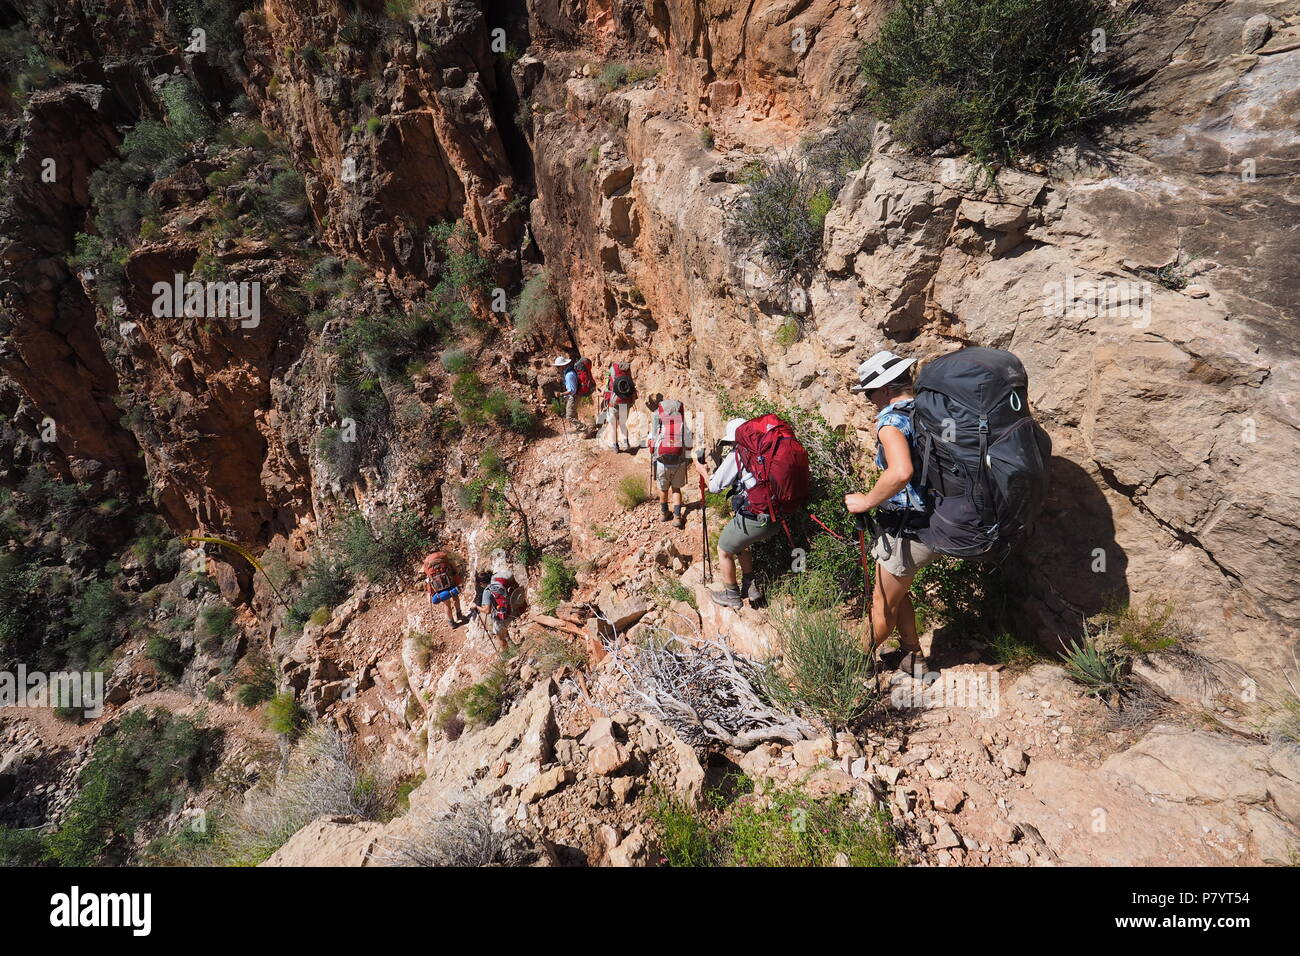 Backpackers descending a challenging portion of the Grandview Trail between Horseshoe Mesa and Page Spring in Grand Canyon National Park, Arizona. - Stock Image